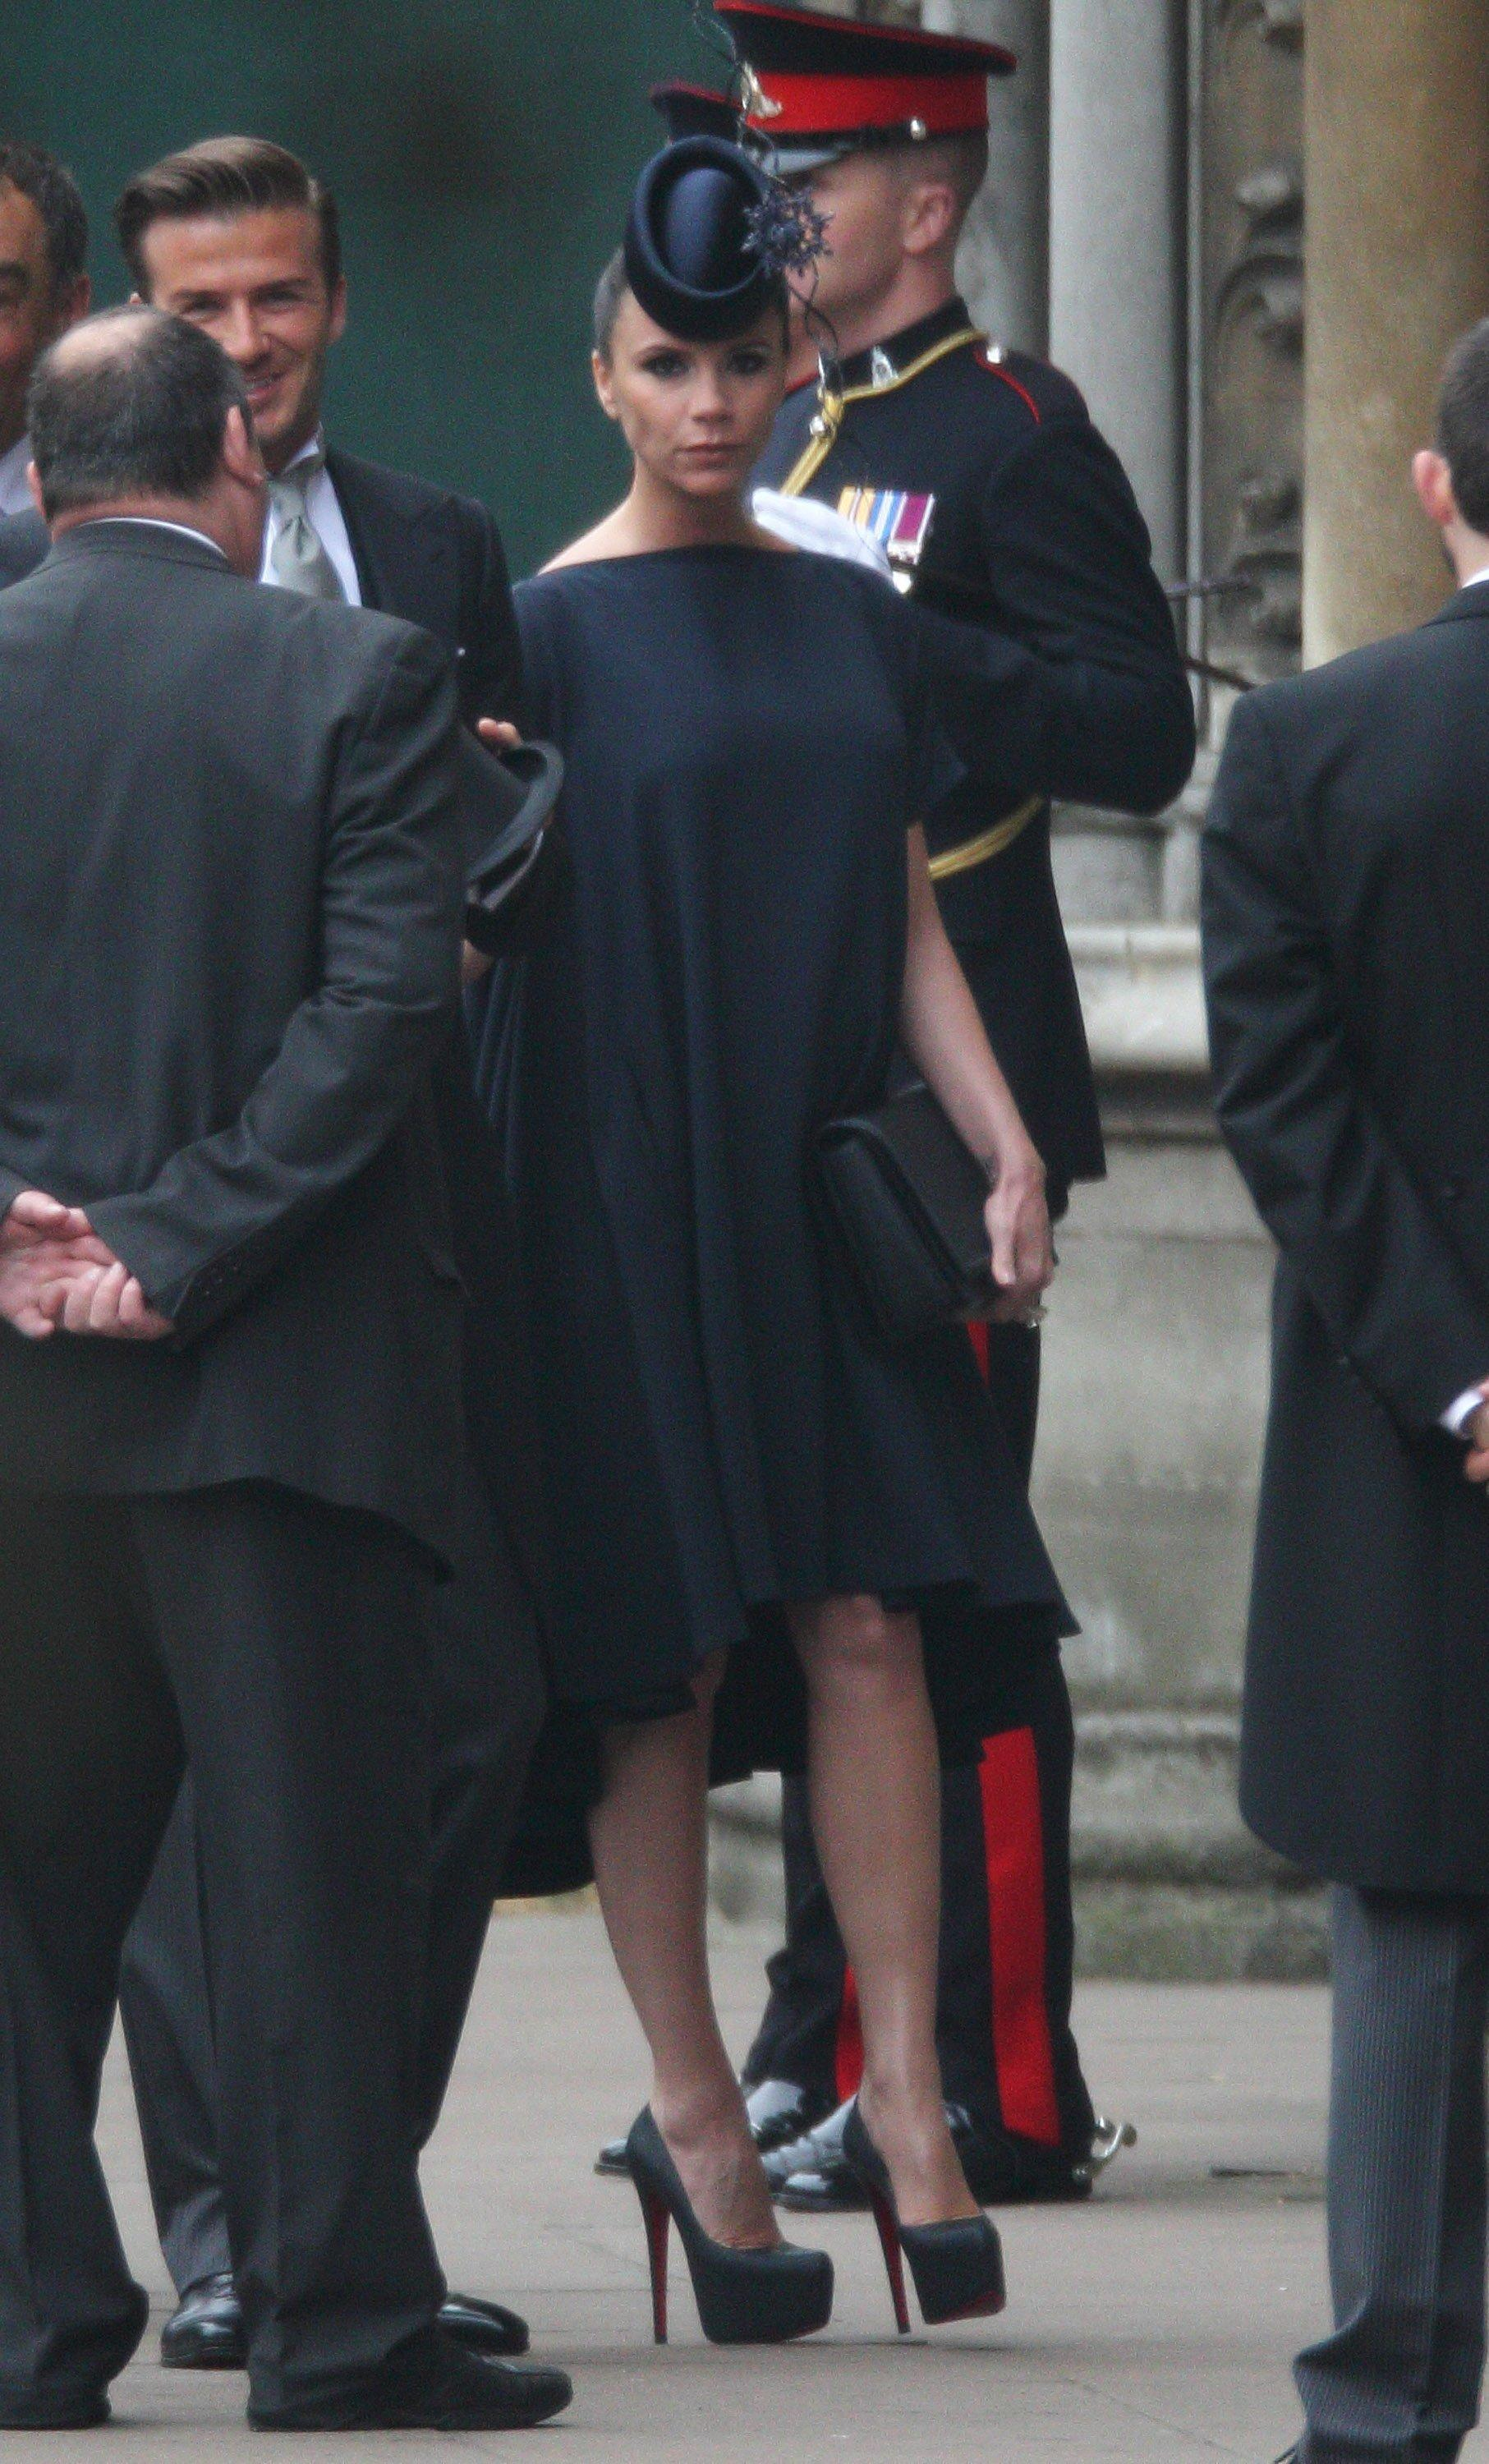 Victoria Beckham S Royal Wedding Guest Outfits Follow This 1 Simple Rule